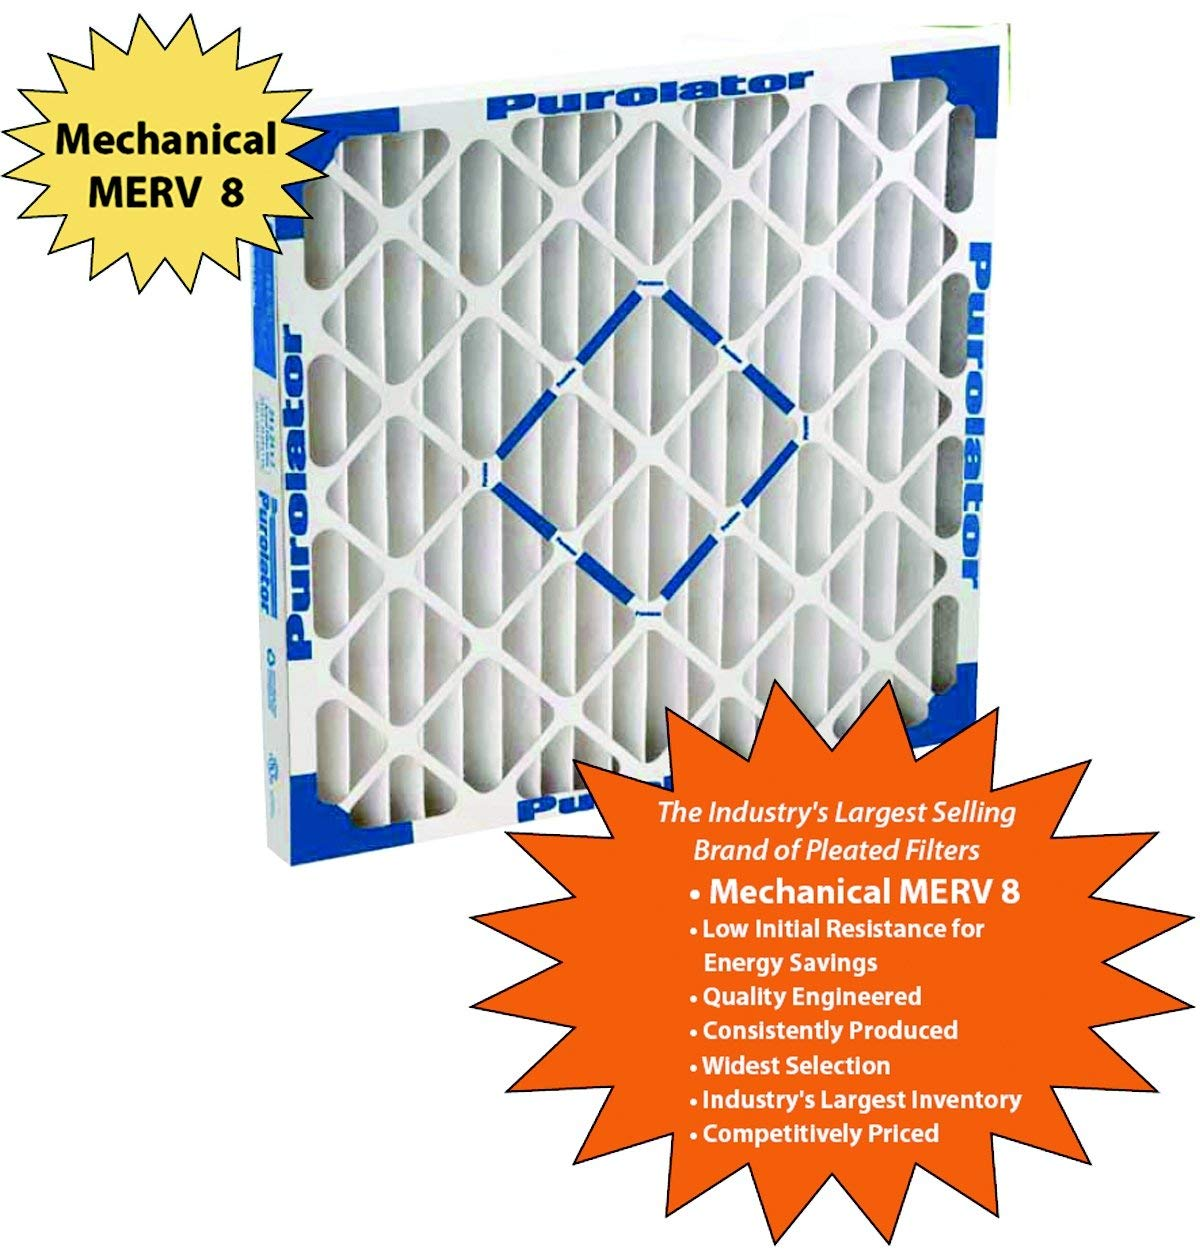 KP-20x25x4x2.AZ.DSC Furnace Air Filter STCC 20x25x4 Purolator Key Pleat Extended Surface Pleated Air Filter Mechanical MERV 8 Assigned by Sterling Seal /& Supply, Pack of 2